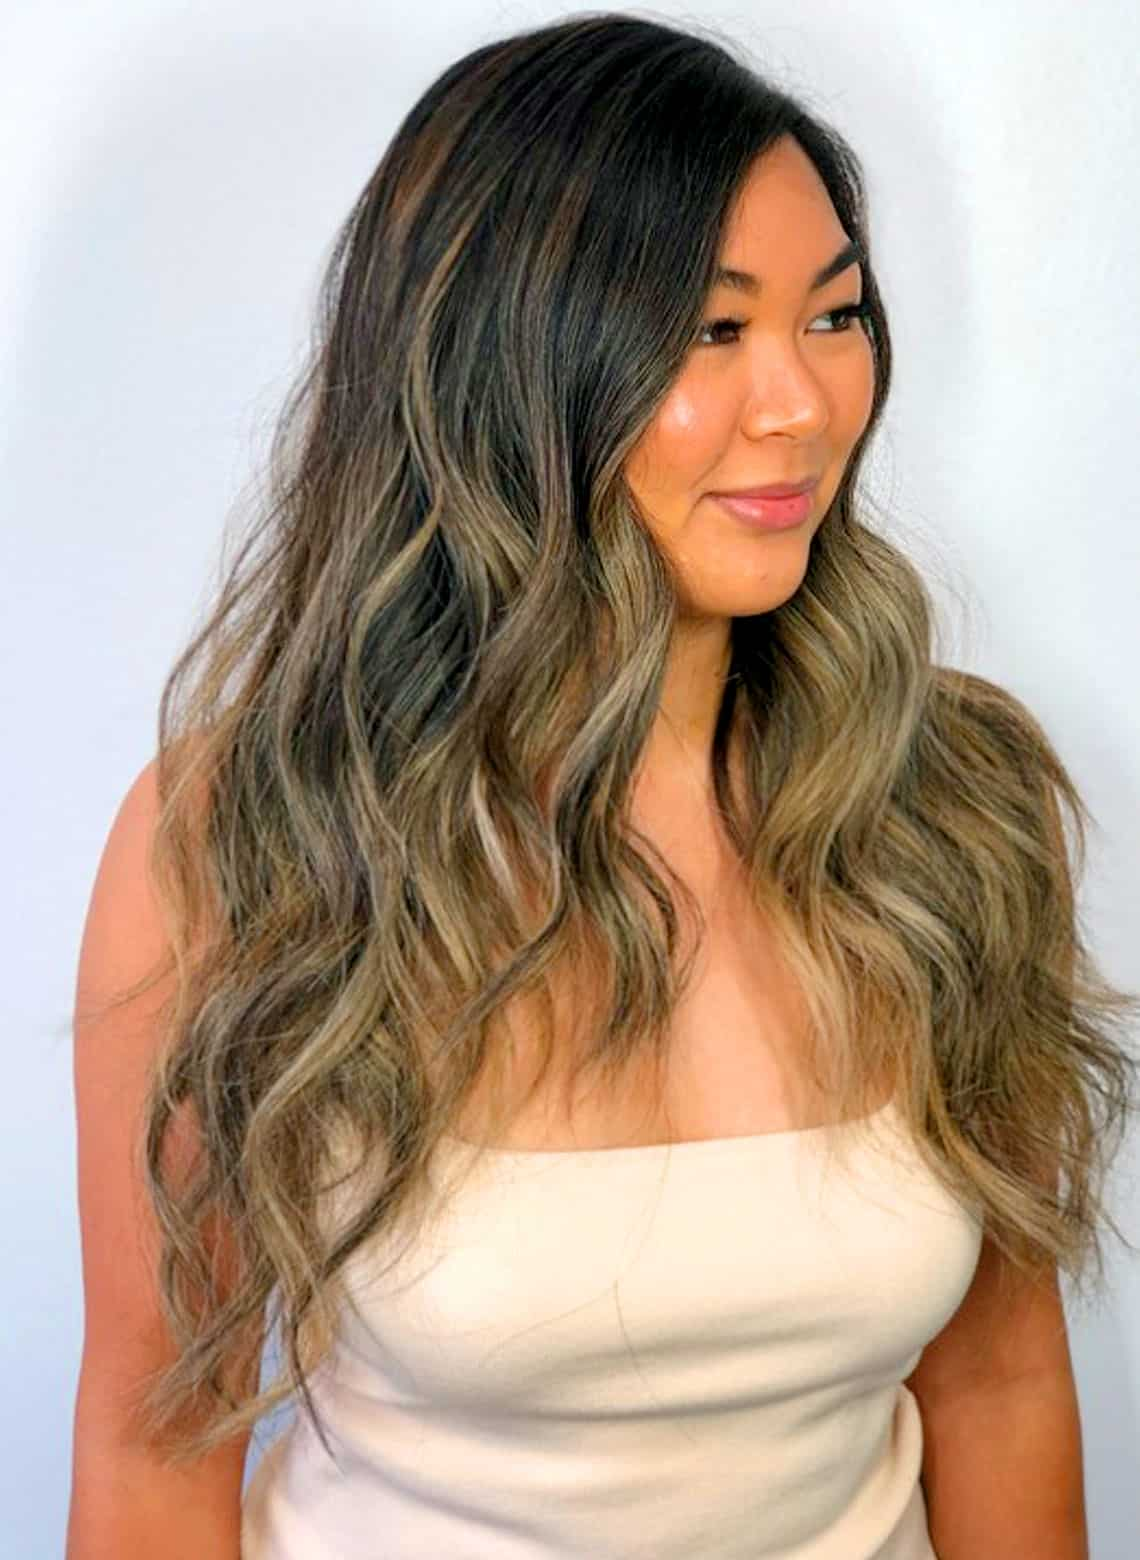 woman with beachy waves and middle part